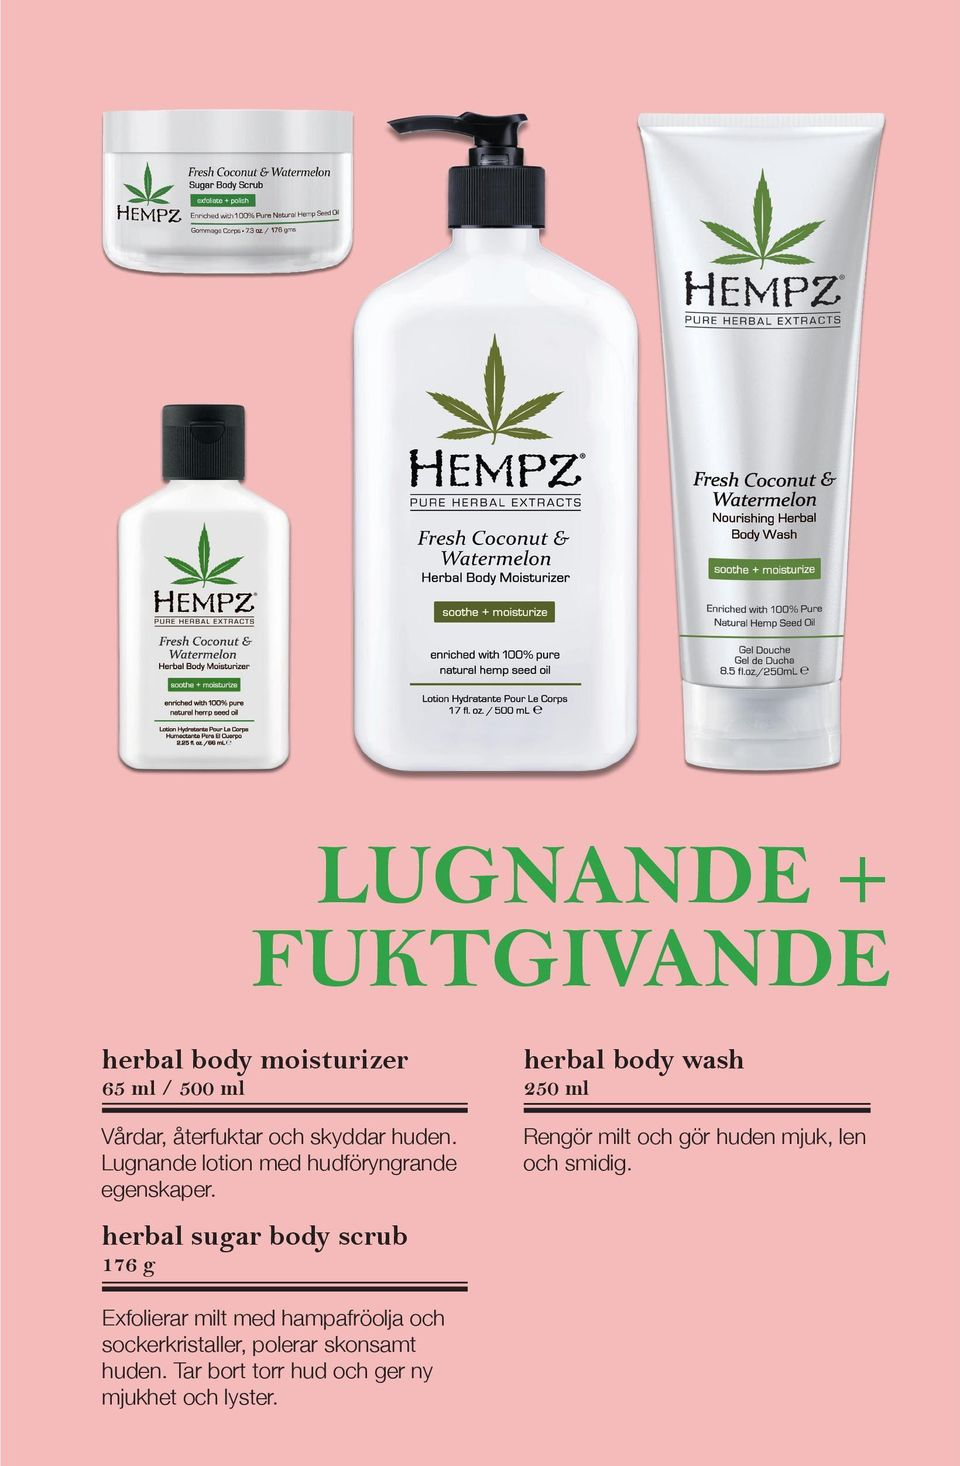 herbal sugar body scrub 176 g herbal body wash 250 ml Rengör milt och gör huden mjuk, len och